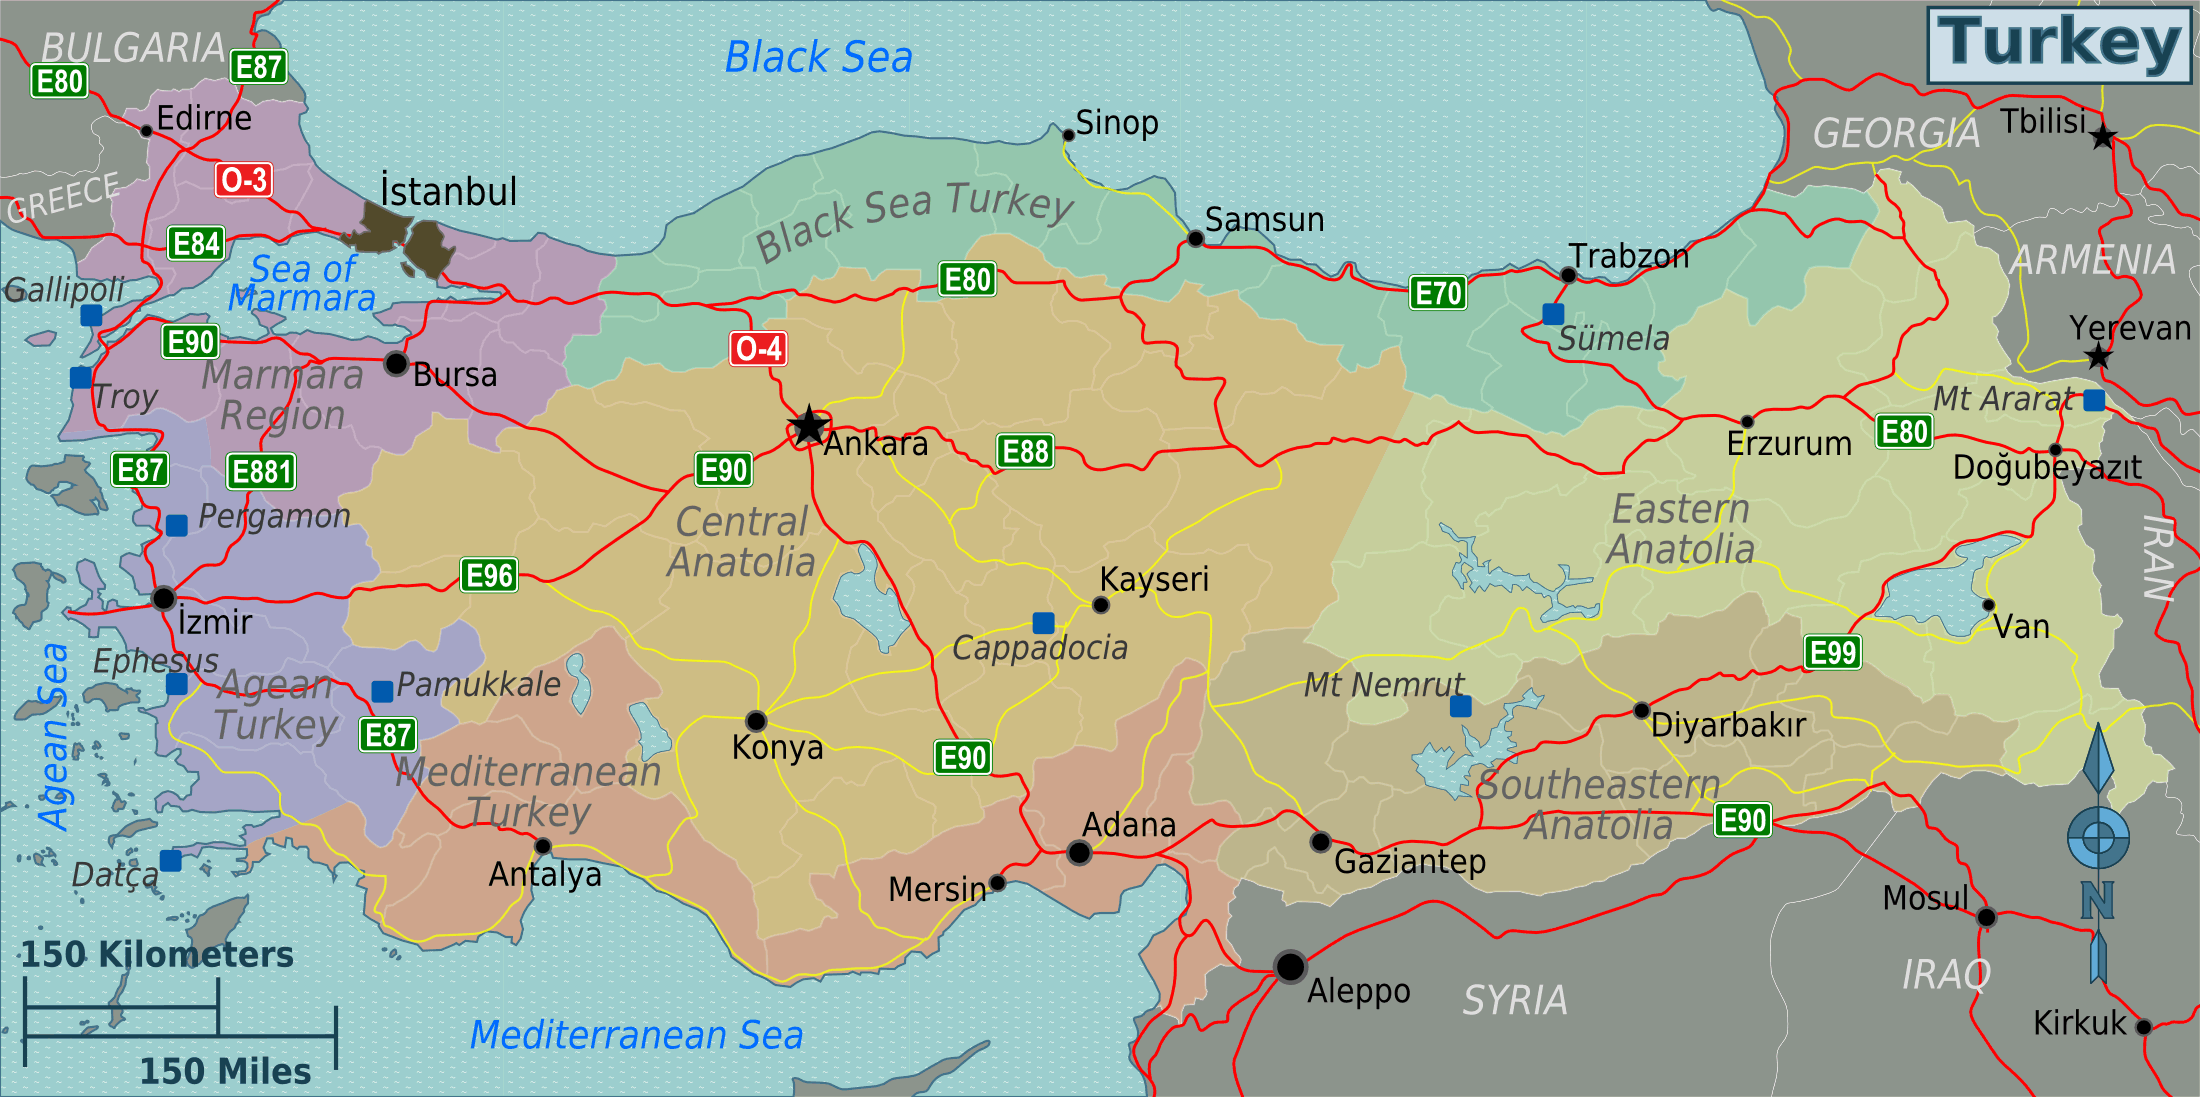 Turkey regions map google search trkye hartasip turkey regions map google search gumiabroncs Images